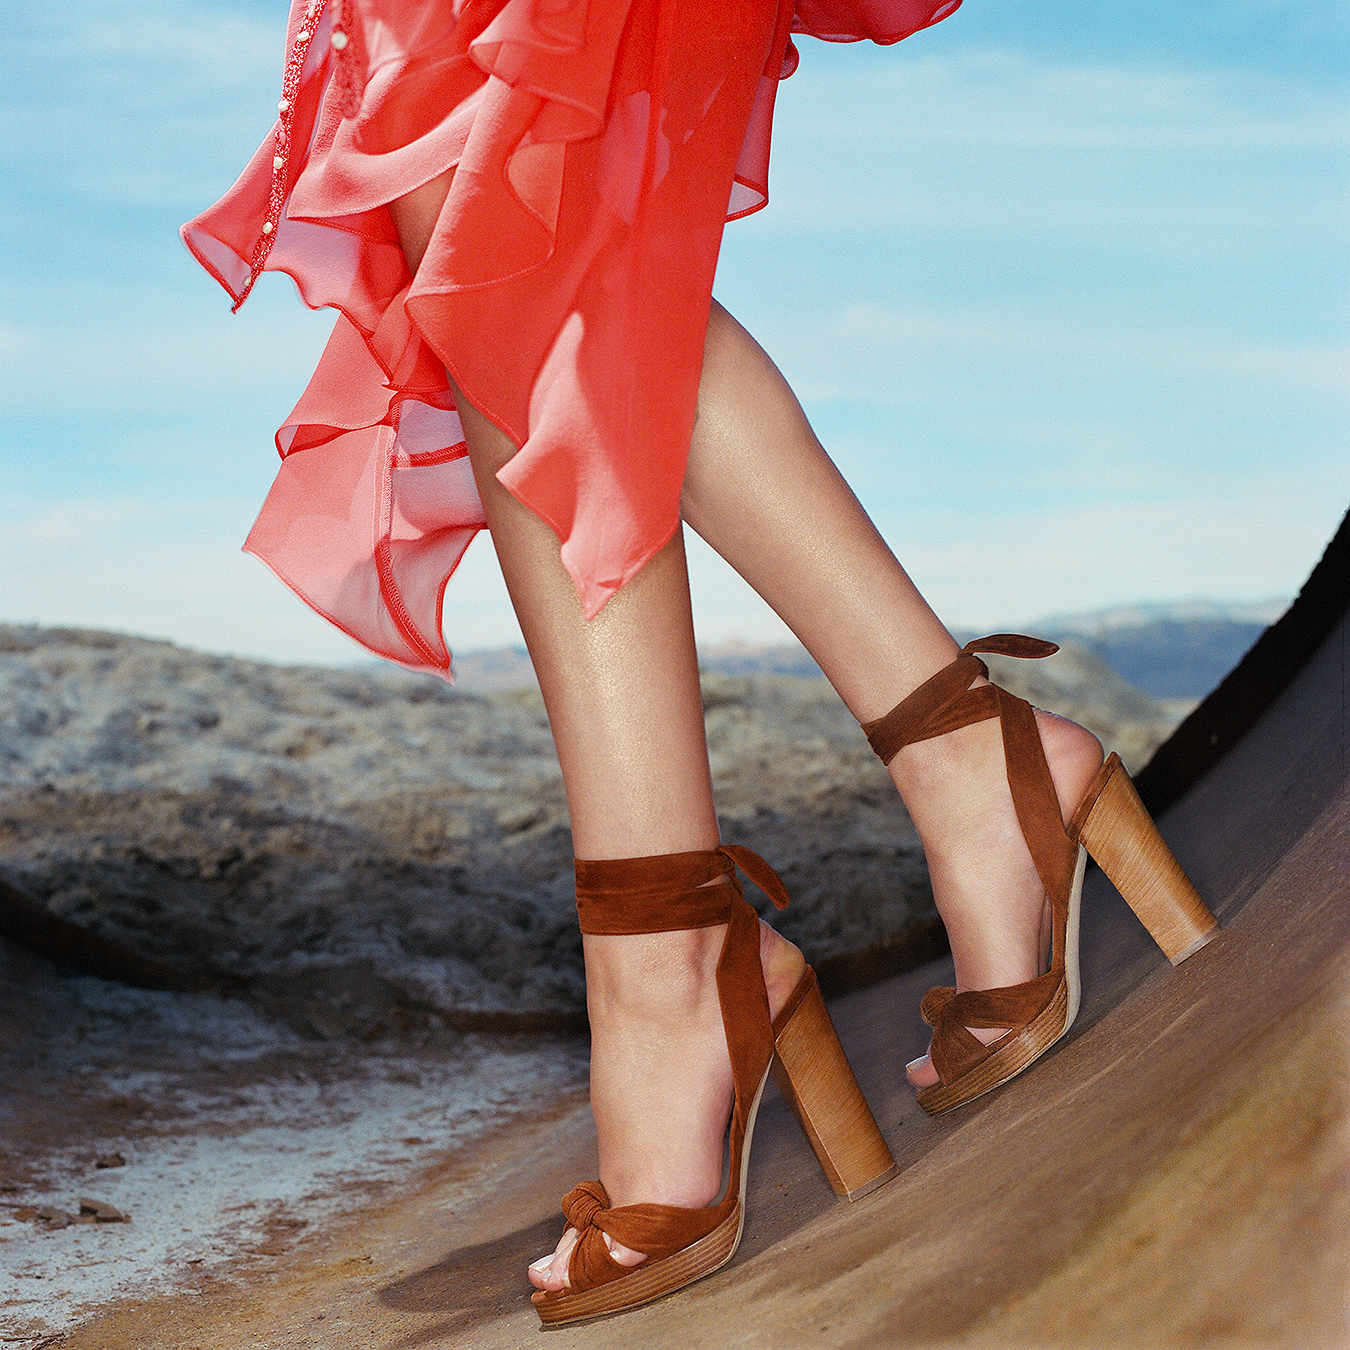 Tony_Ward_fashion_photography_client_Neiman_Marcus_shoes_location_Palm_Springs_